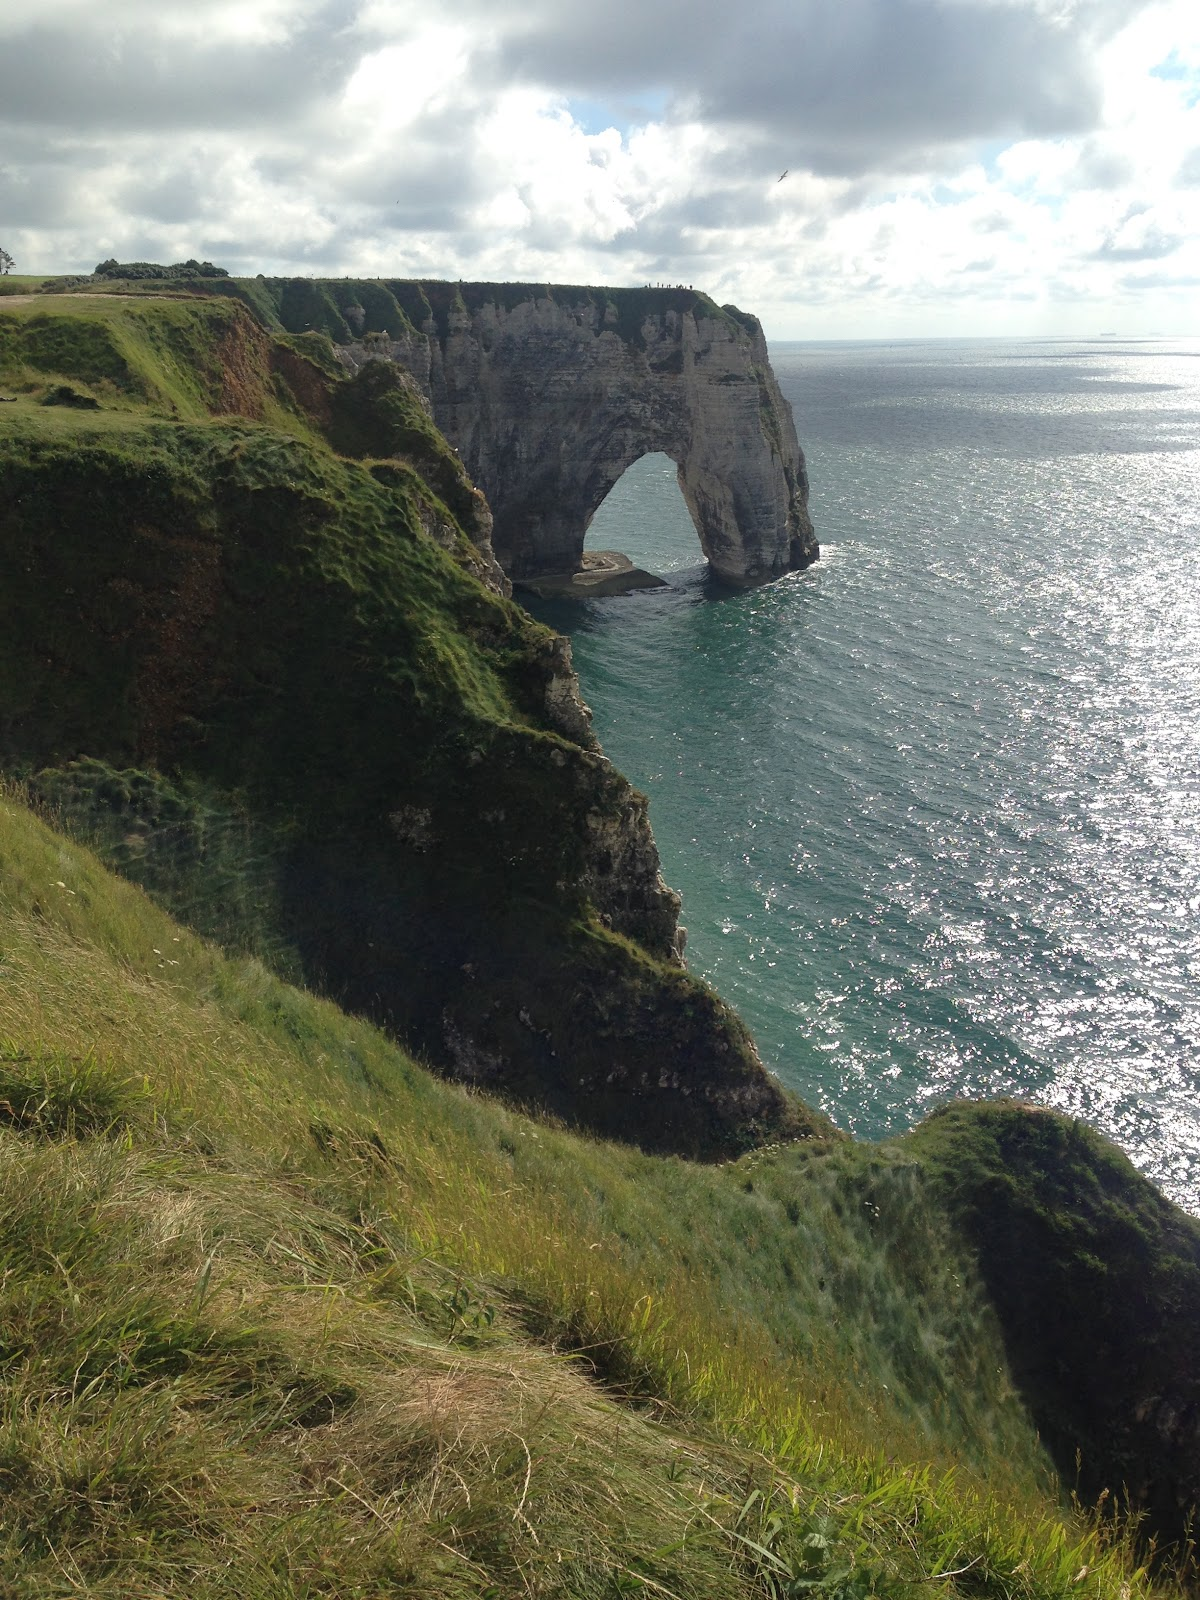 etretat france, dramatic coastline with large cliff. Calm ocean, green grass and sunny yet cloudy weather.